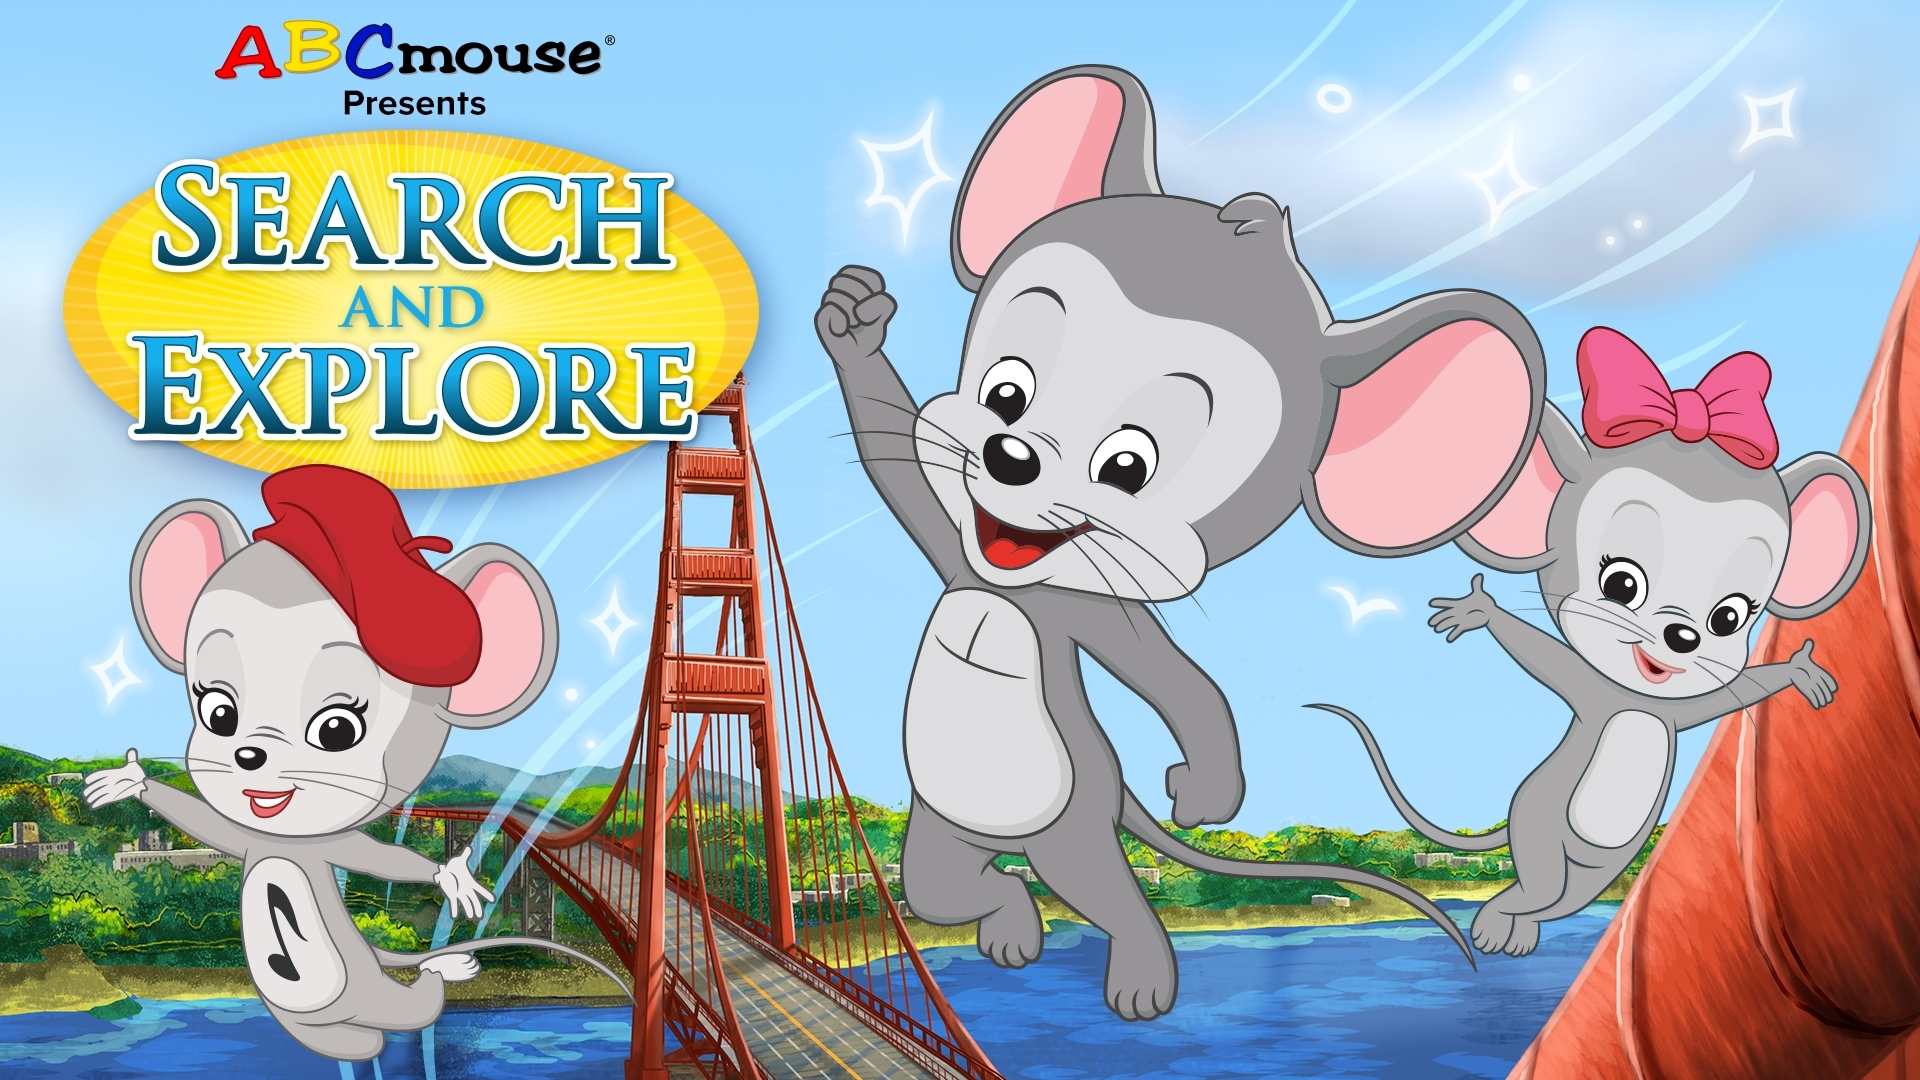 Tubi And Age Of Learning Announce Launch Of The New Educational Animated Series From Abcmouse Search And Explore Exclusively On Tubi Kids Business Wire